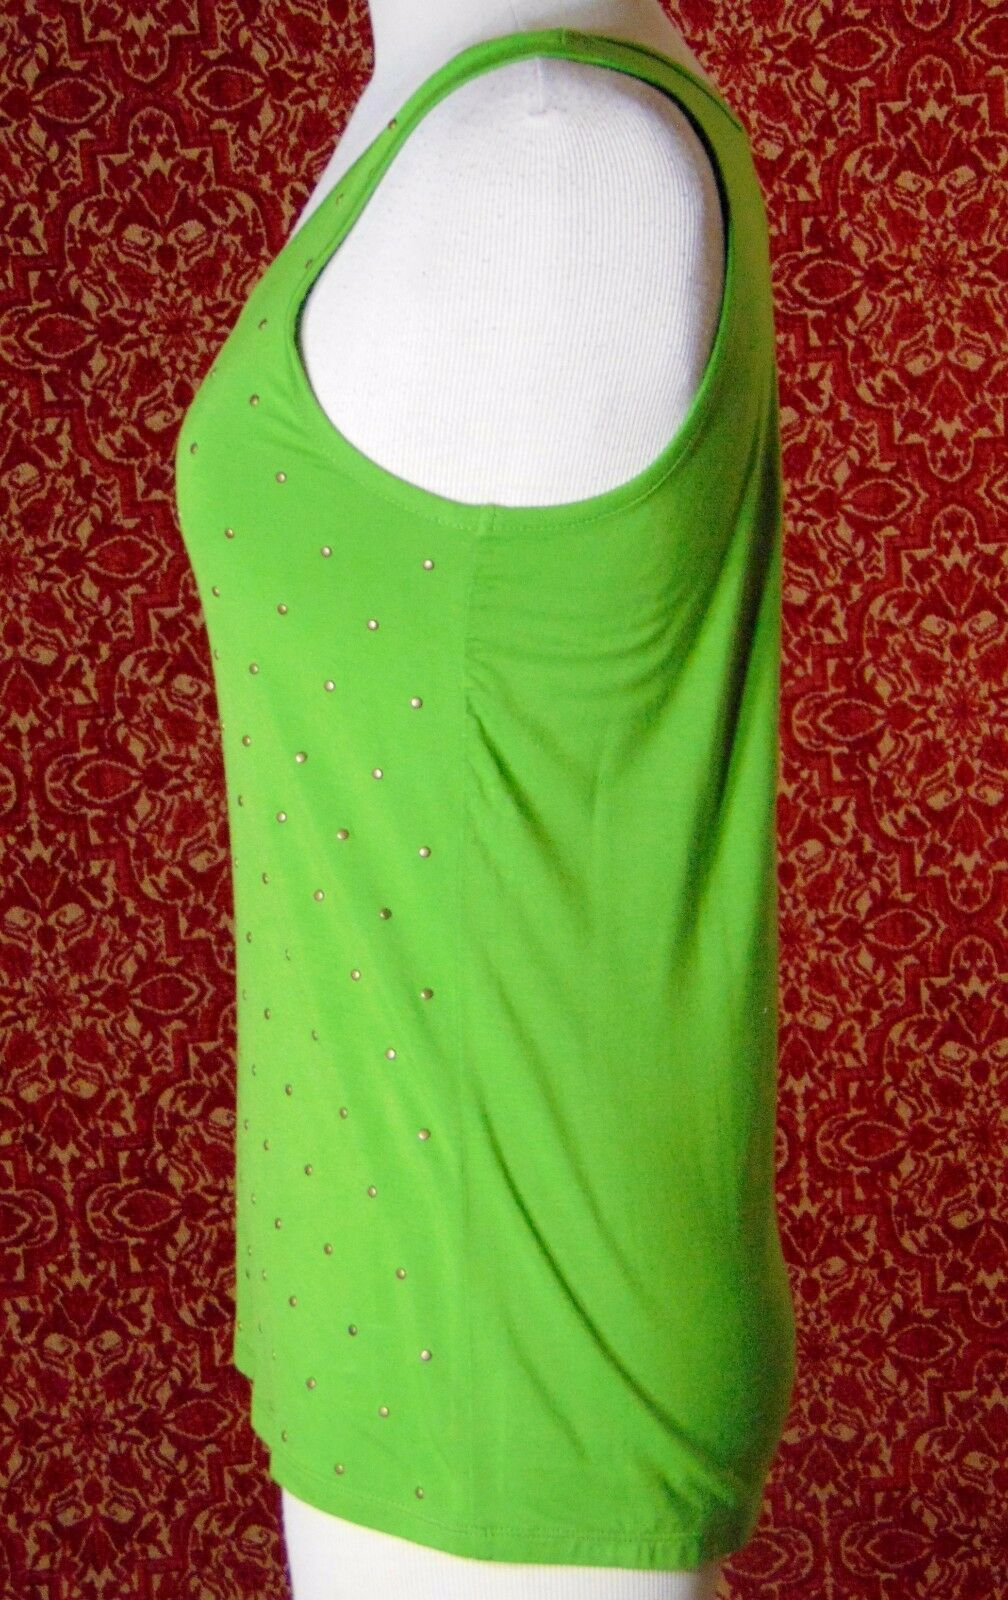 ETOILE green 2 piece stretch rayon tank blouse & sweater jacket M (T47-02I8G) image 9